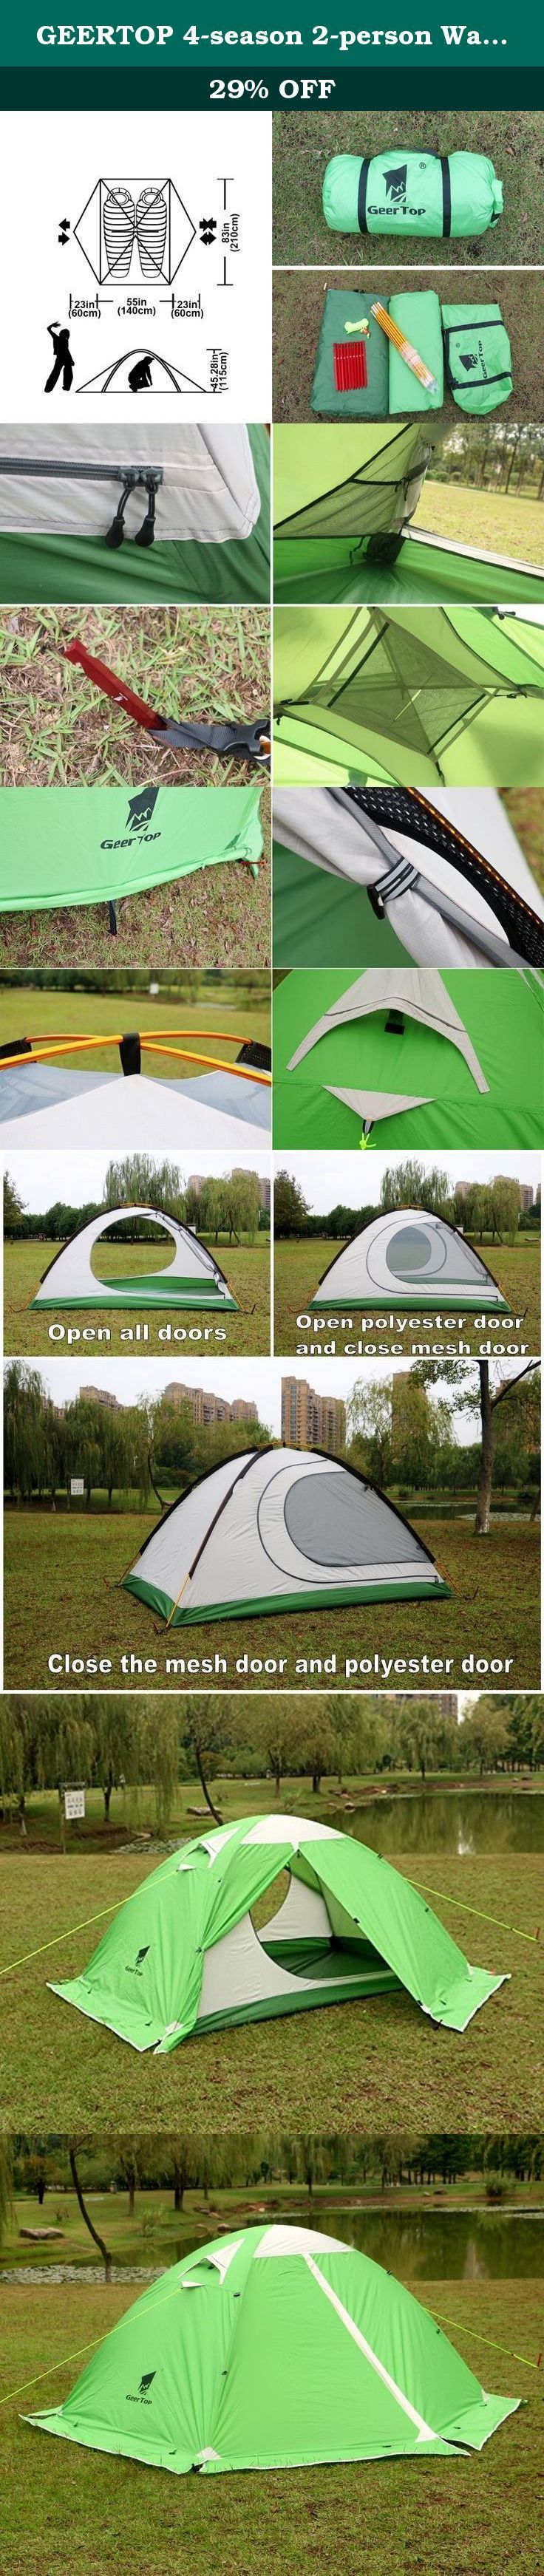 GEERTOP 4-season 2-person Waterproof Dome Backpacking Tent For Camping, Hiking, Travel, Climbing - Easy Set Up. If you're looking for a strong, durable tent with plenty of space and versatility, for every season that doesn't breaking the bank then look no further! Specifications: Number of poles: 2 Pole type: Aluminum Stakes type: Aluminum Seasons: 4 inner tent material: 210T breathable polyester + high density fine nylon mesh. Floor material: 210D PU5000MM Oxford fabric, seam taped. Fly...